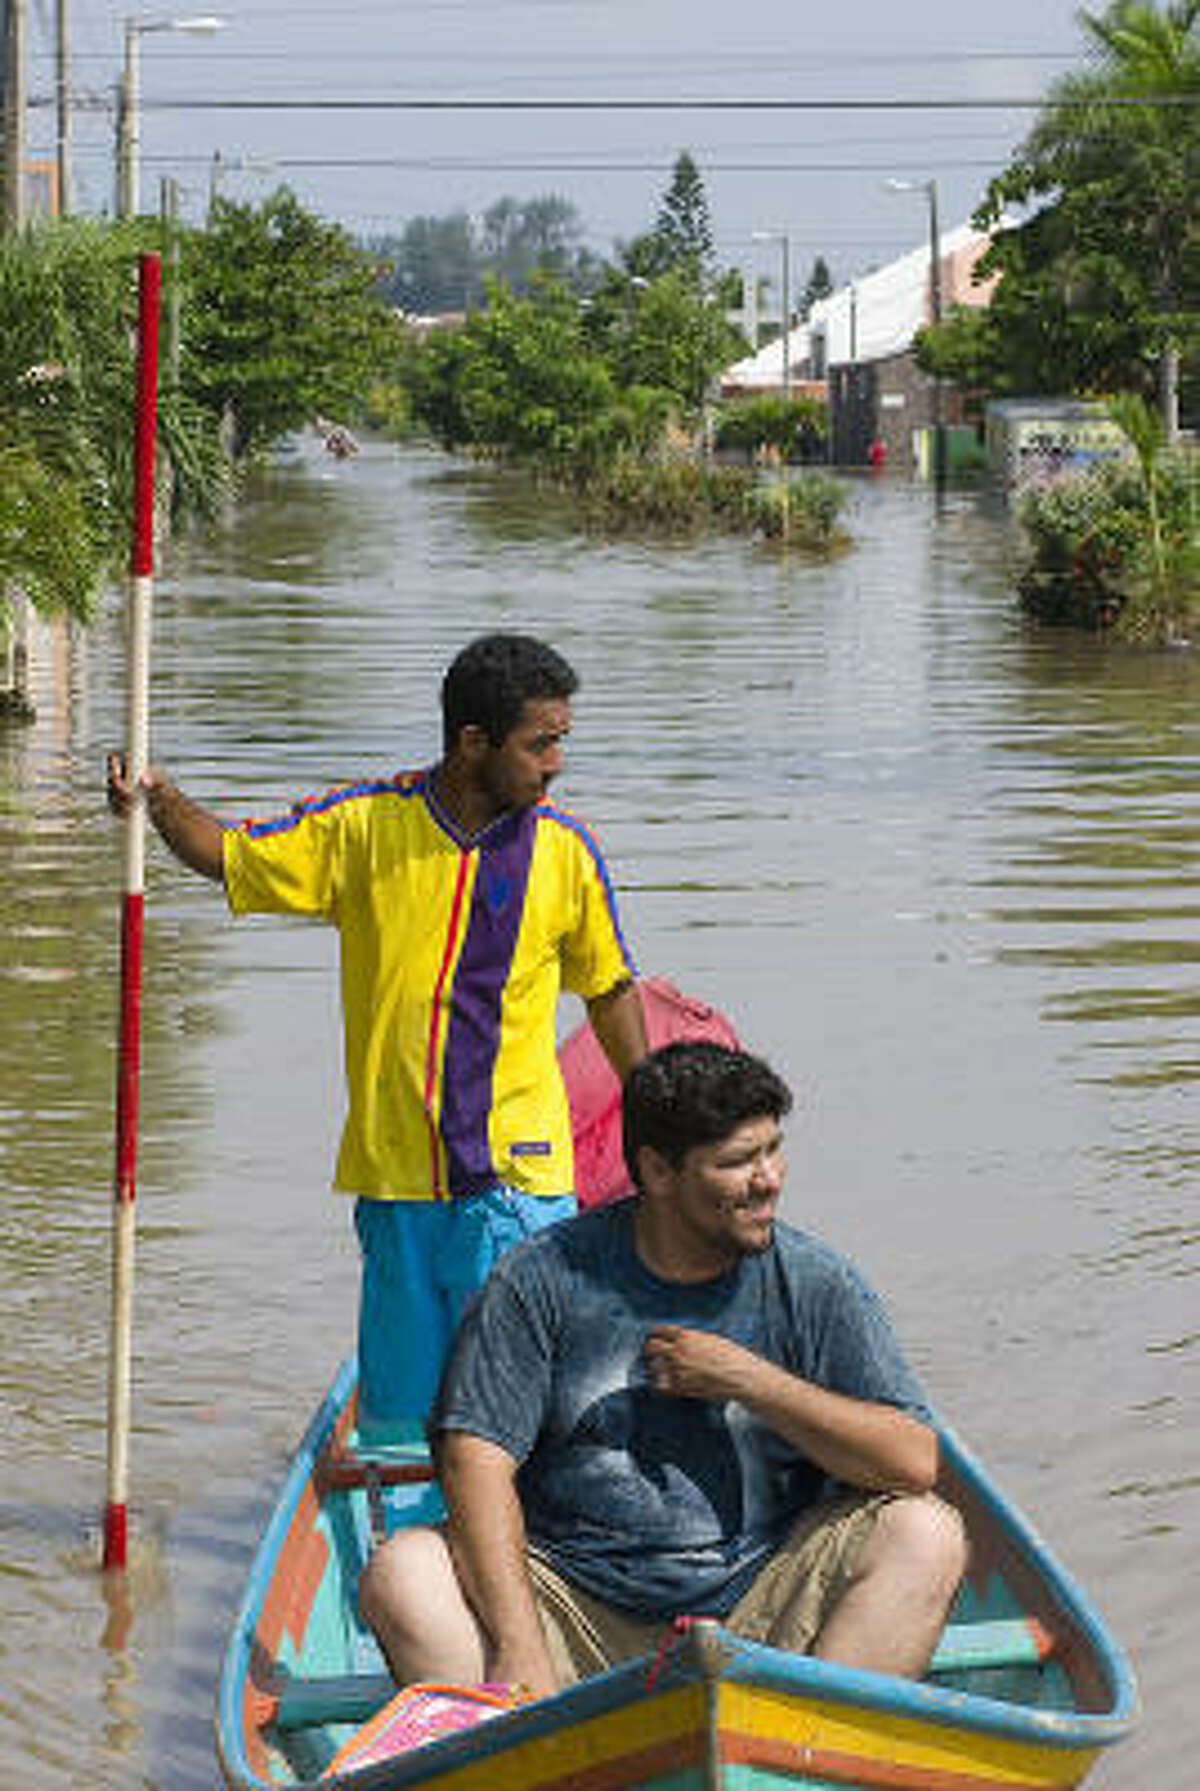 Residents of the La Floresta neighborhood in Veracruz city use a small boat to travel from their flooded homes to a improvised dock along a main highway.